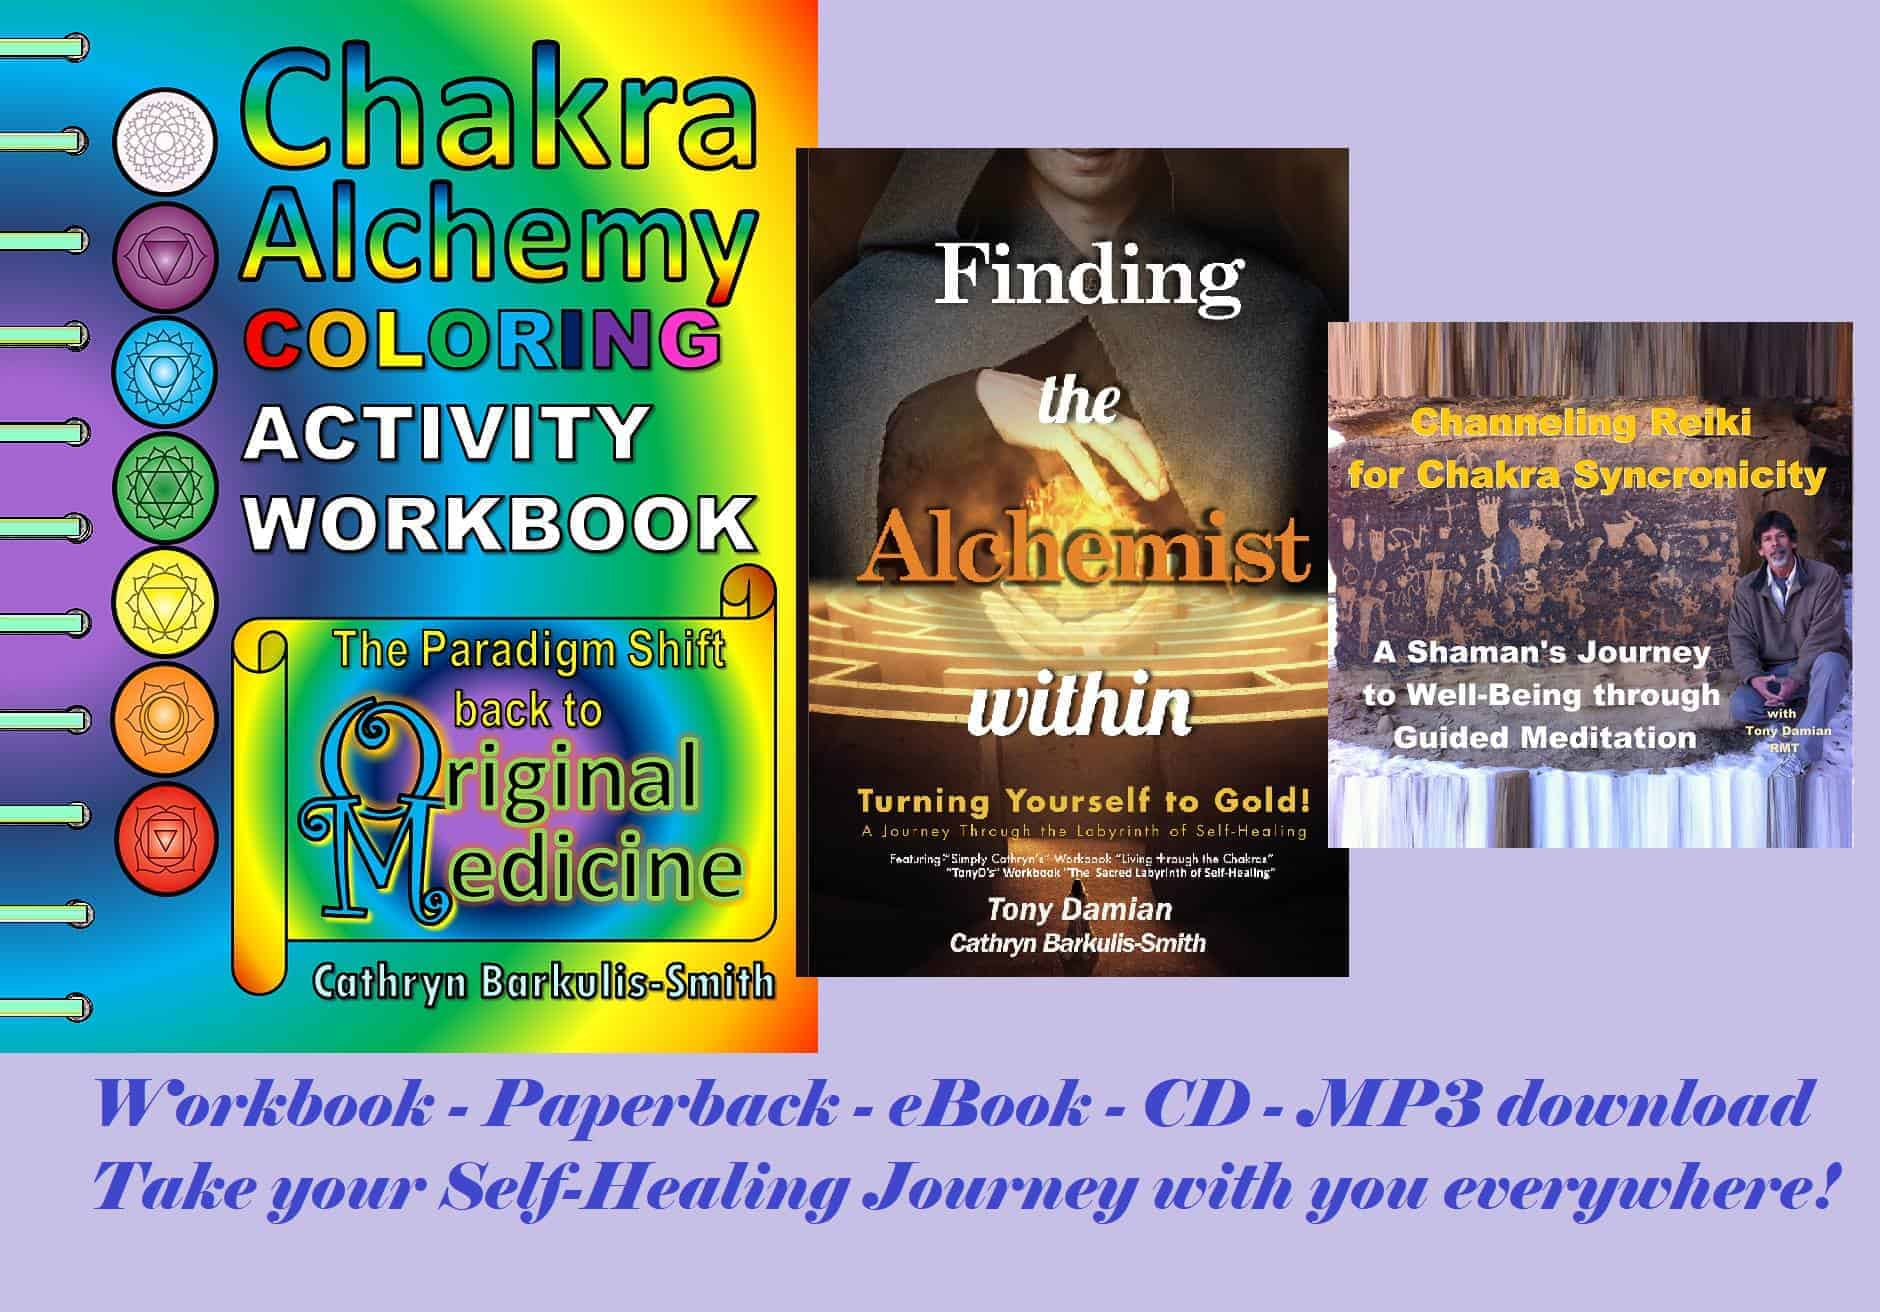 Hello Everyone! I'm new here and learning the ropes as I go. I am an author in self-healing, a